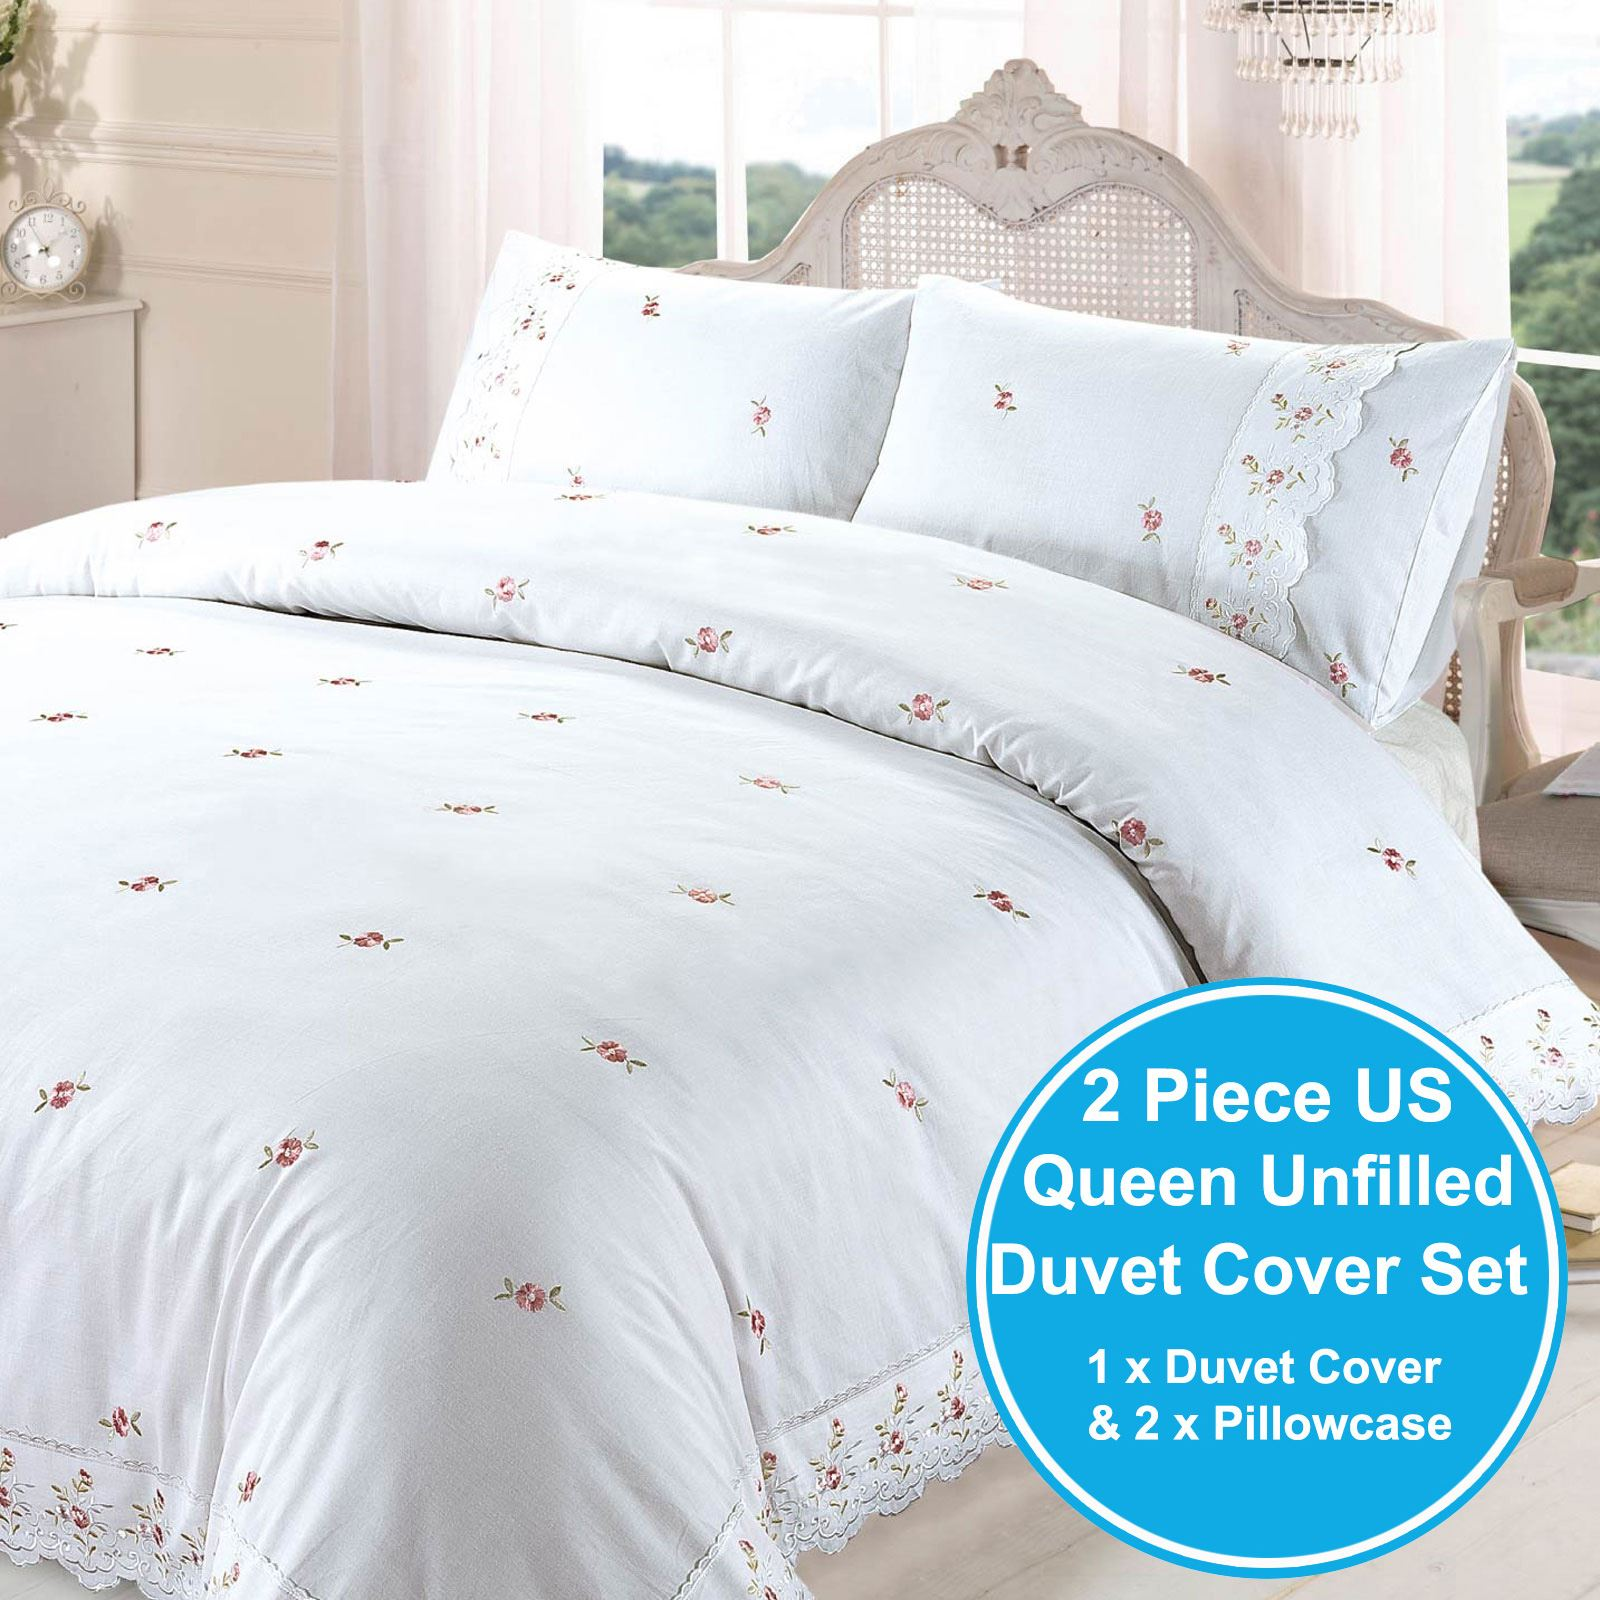 White Duvet Cover King Sophie Floral White King Size Duvet Cover Set Embroidered